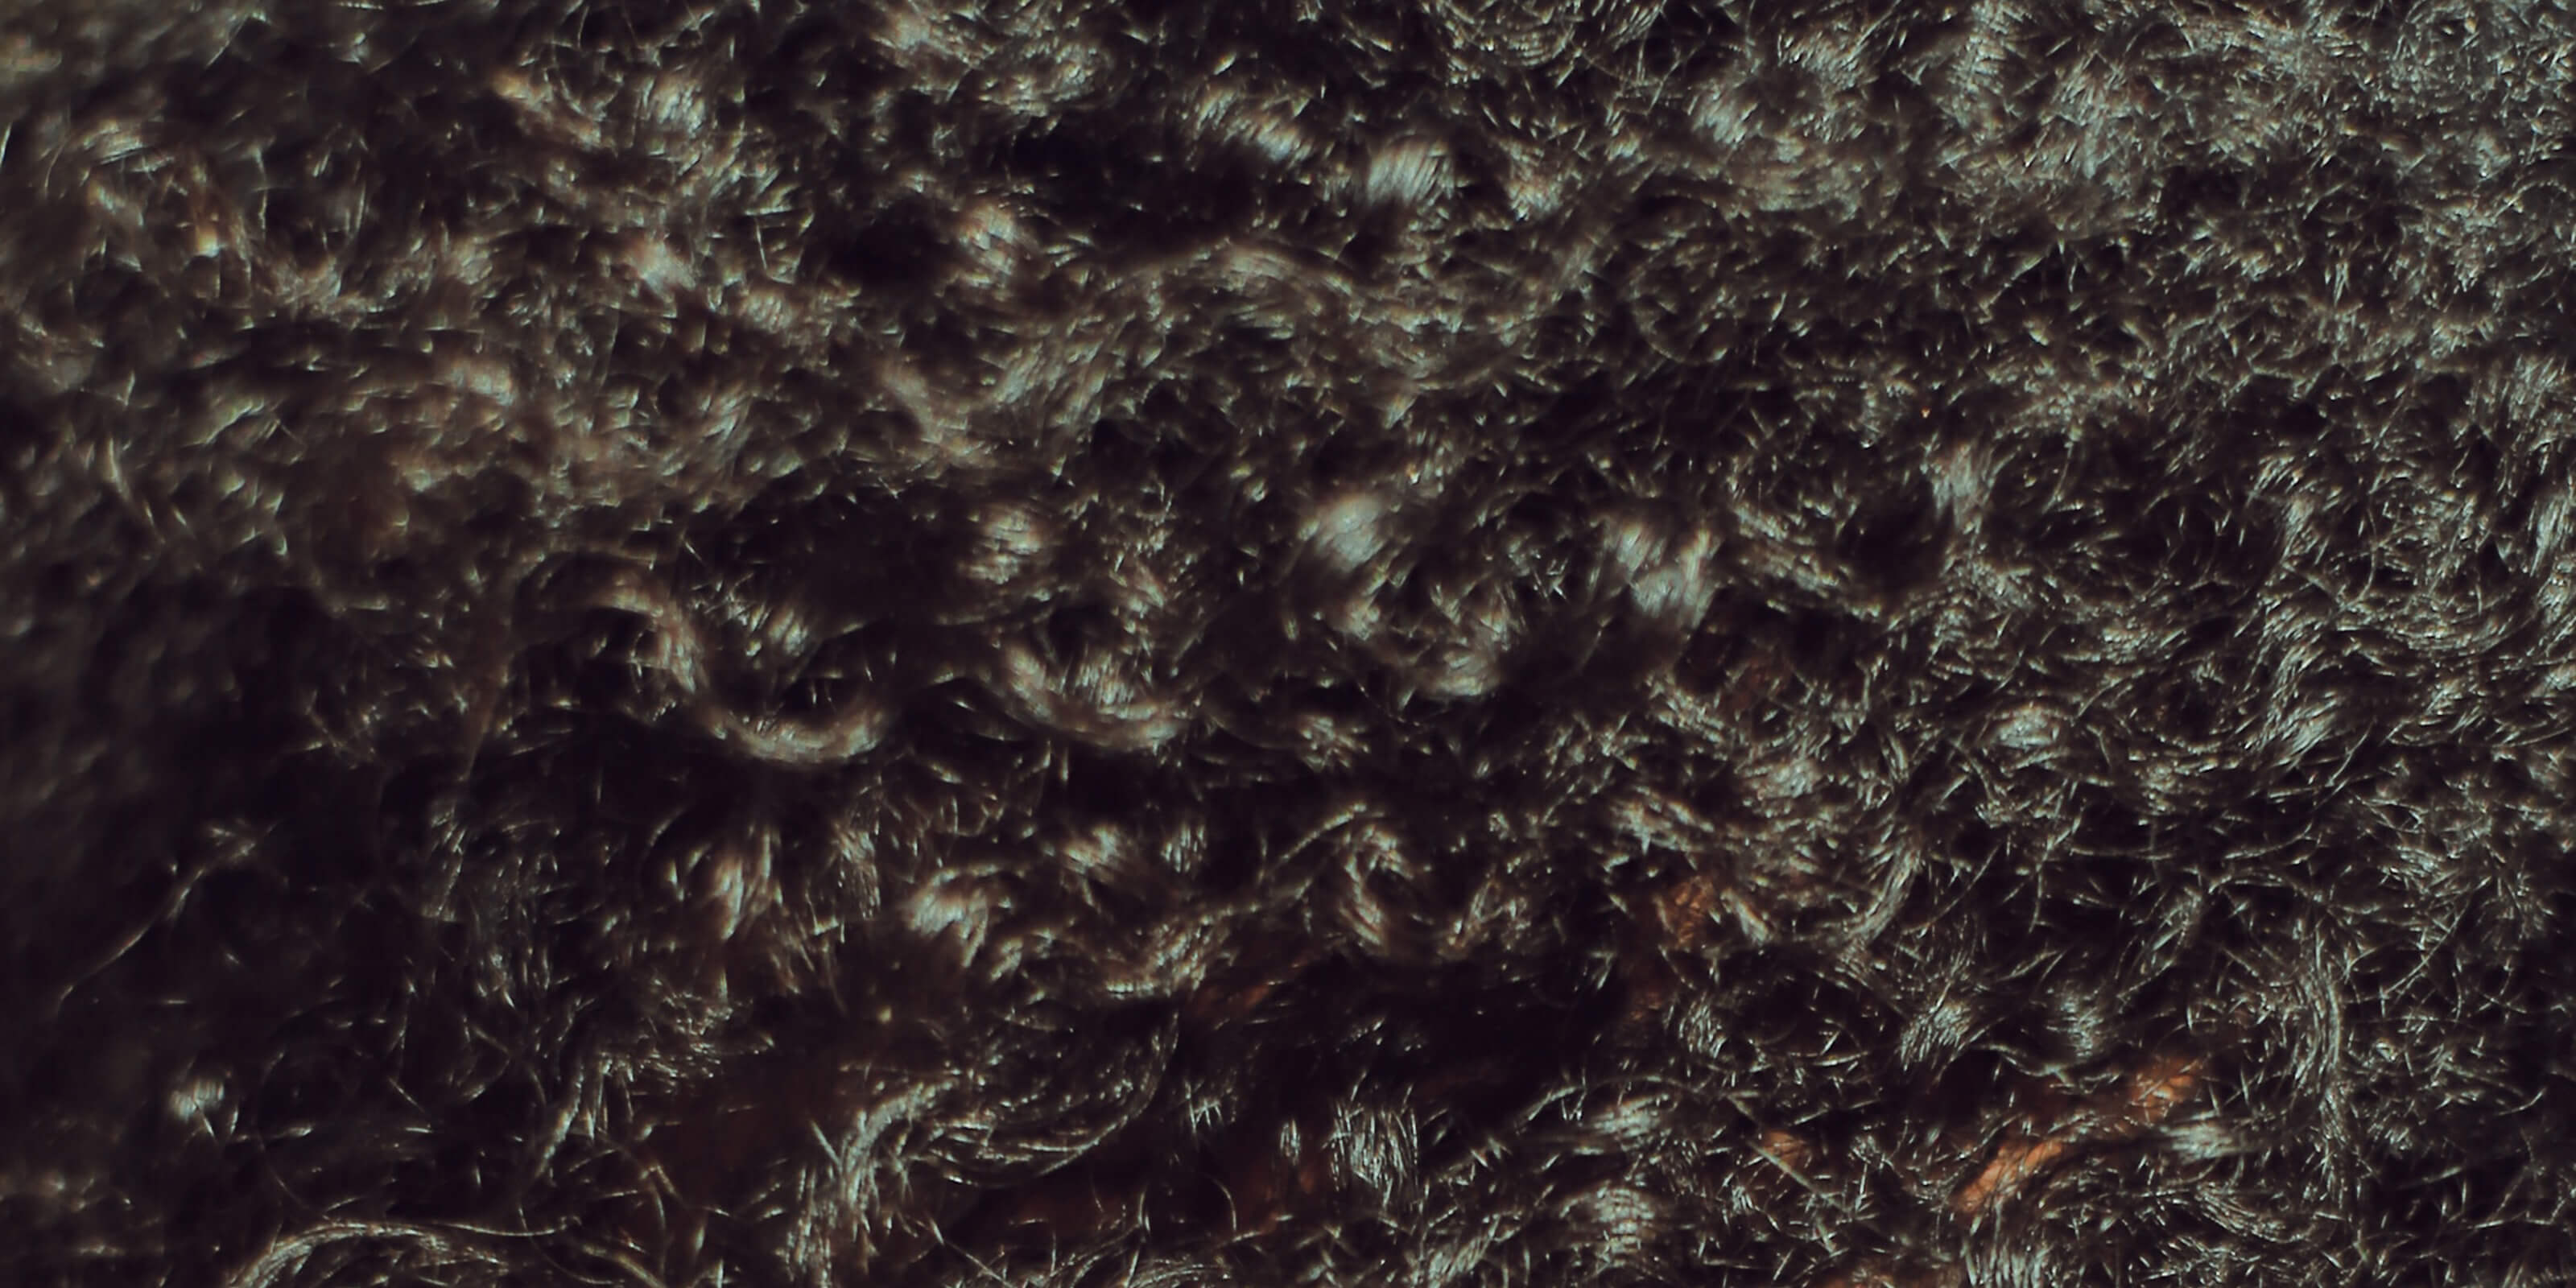 close up image of curly hair